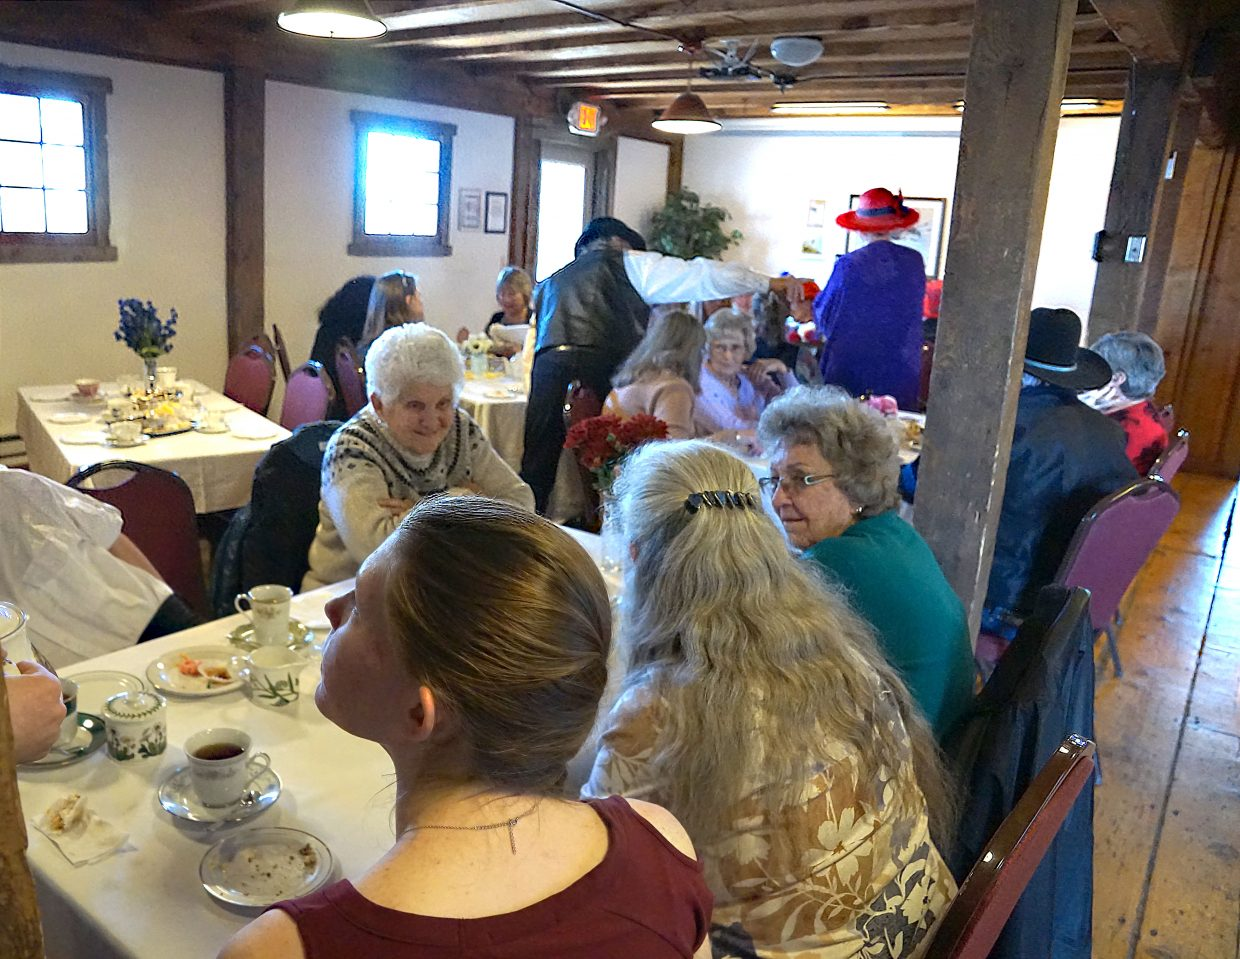 The third annual Winter Tea fundraiser for the Luttrell Barn Cultural Center was held at the barn Sunday, Feb. 24.